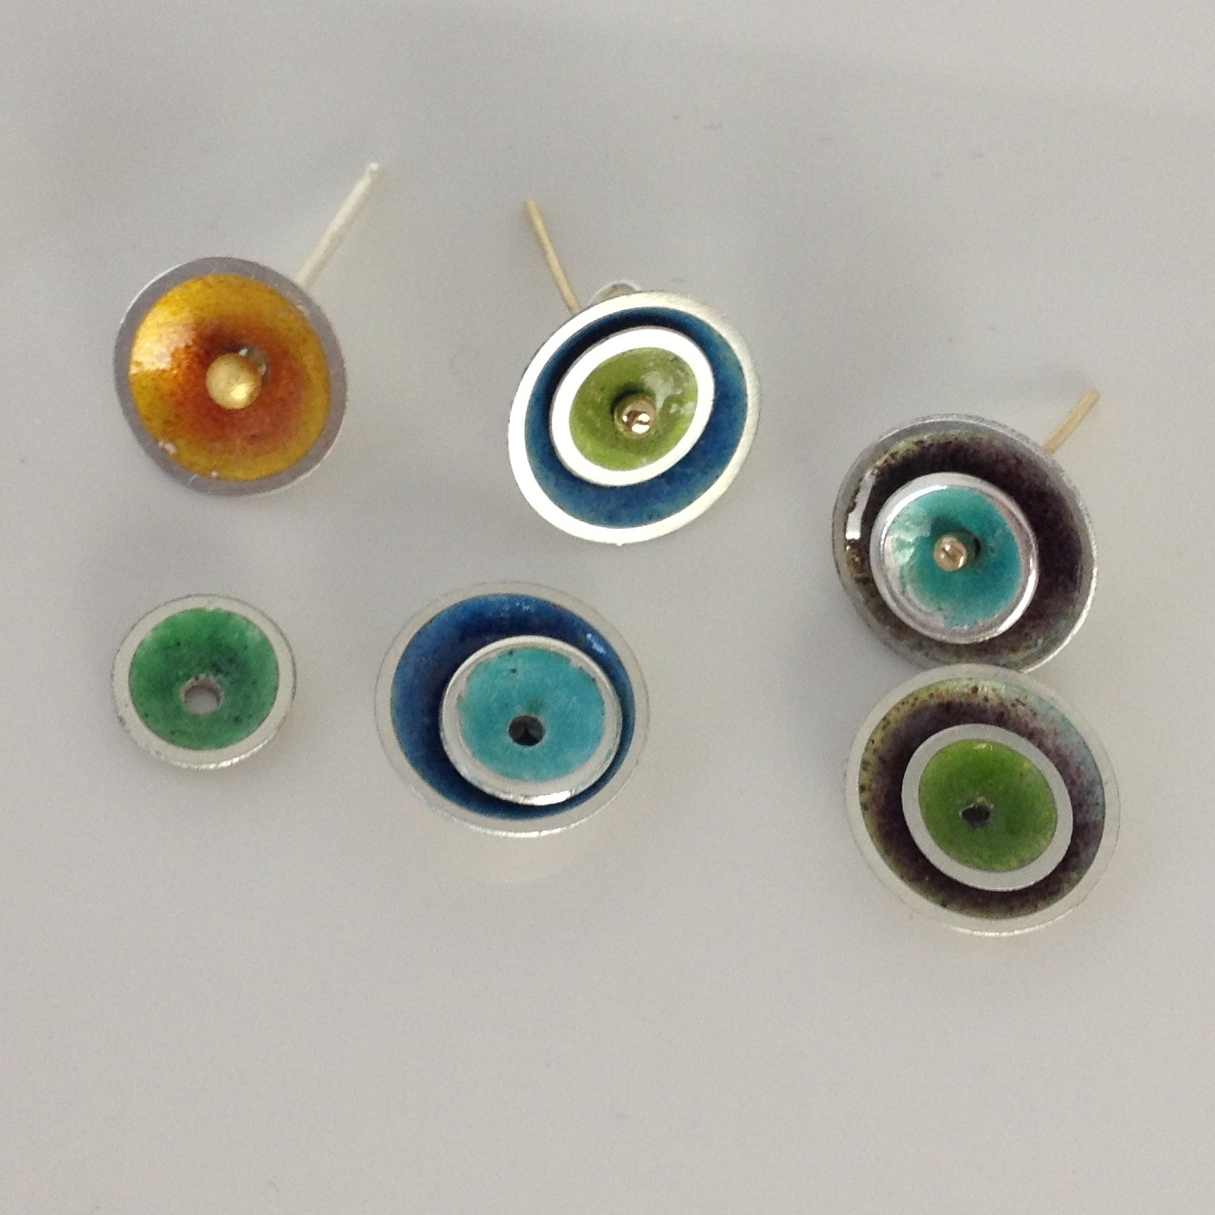 Enamelling fun Make a collection of vibrant coloured discs for layering onto a single earring stud giving you multiple ways of wearing your earrings. Learn how to disc cut and dome centre punch and drill solder a stud and experiment with glass enamel Fired in a Kiln.  £85 per person Minimum 2 max in class 5